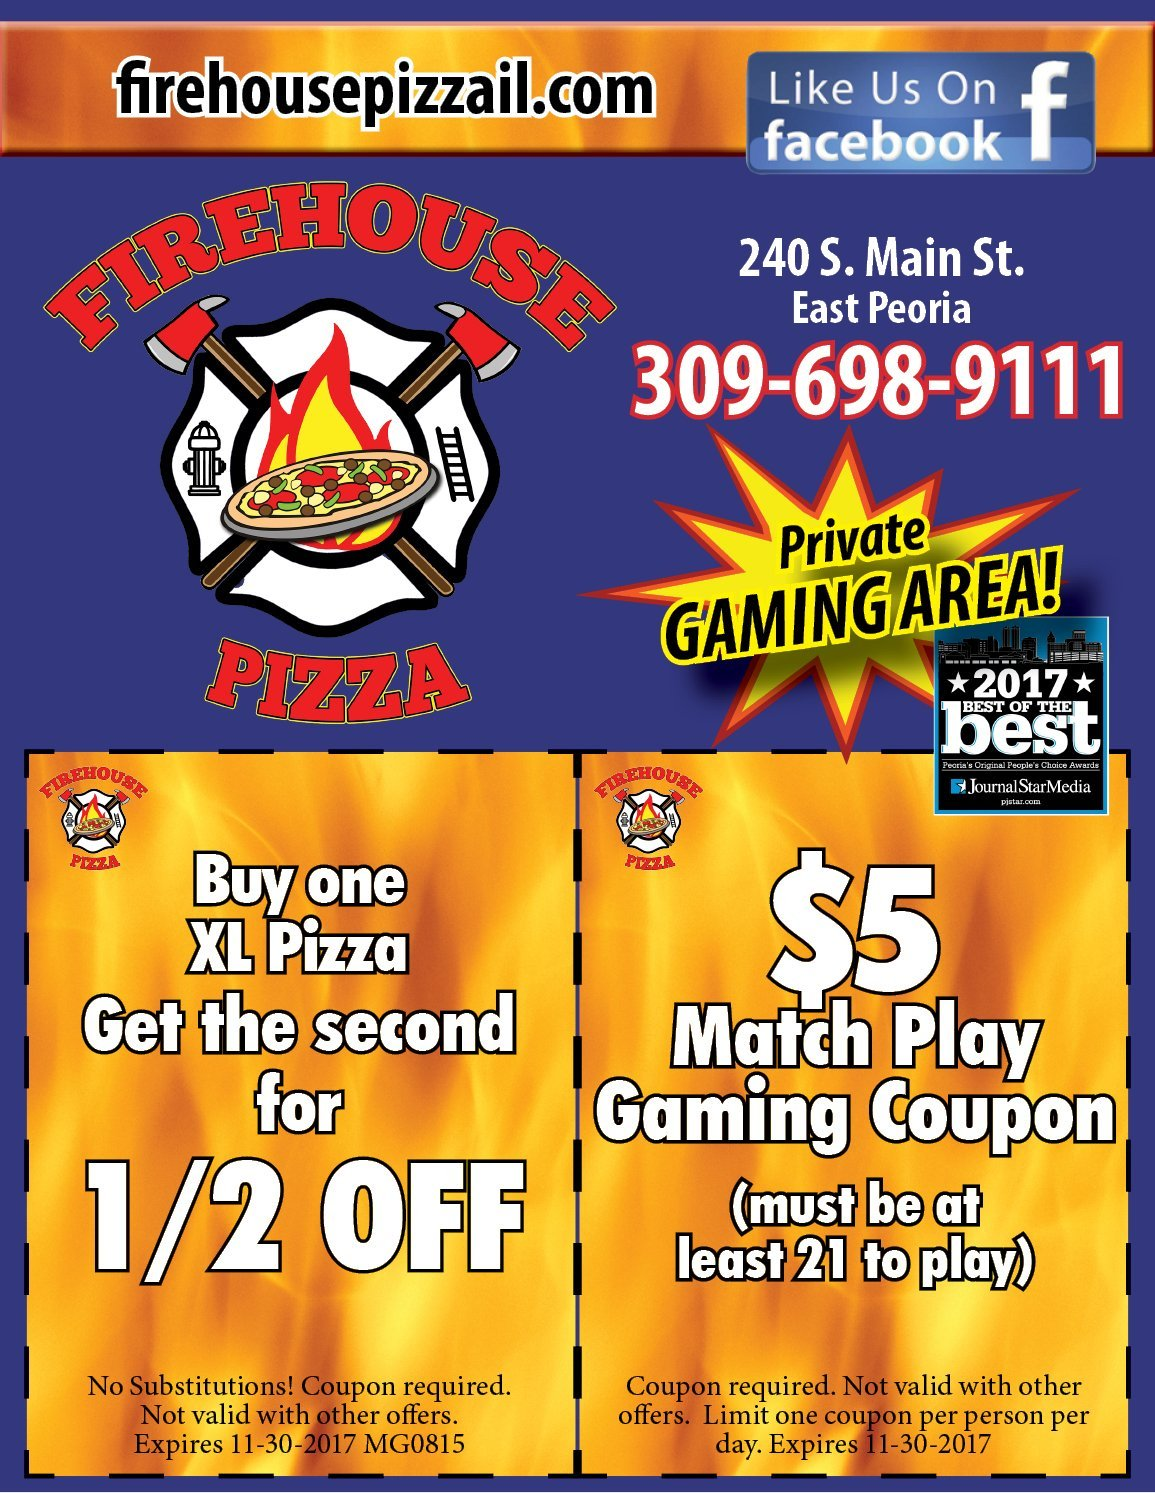 Firehouse Pizza and Pub coupons and $5 match play East Peoria, IL